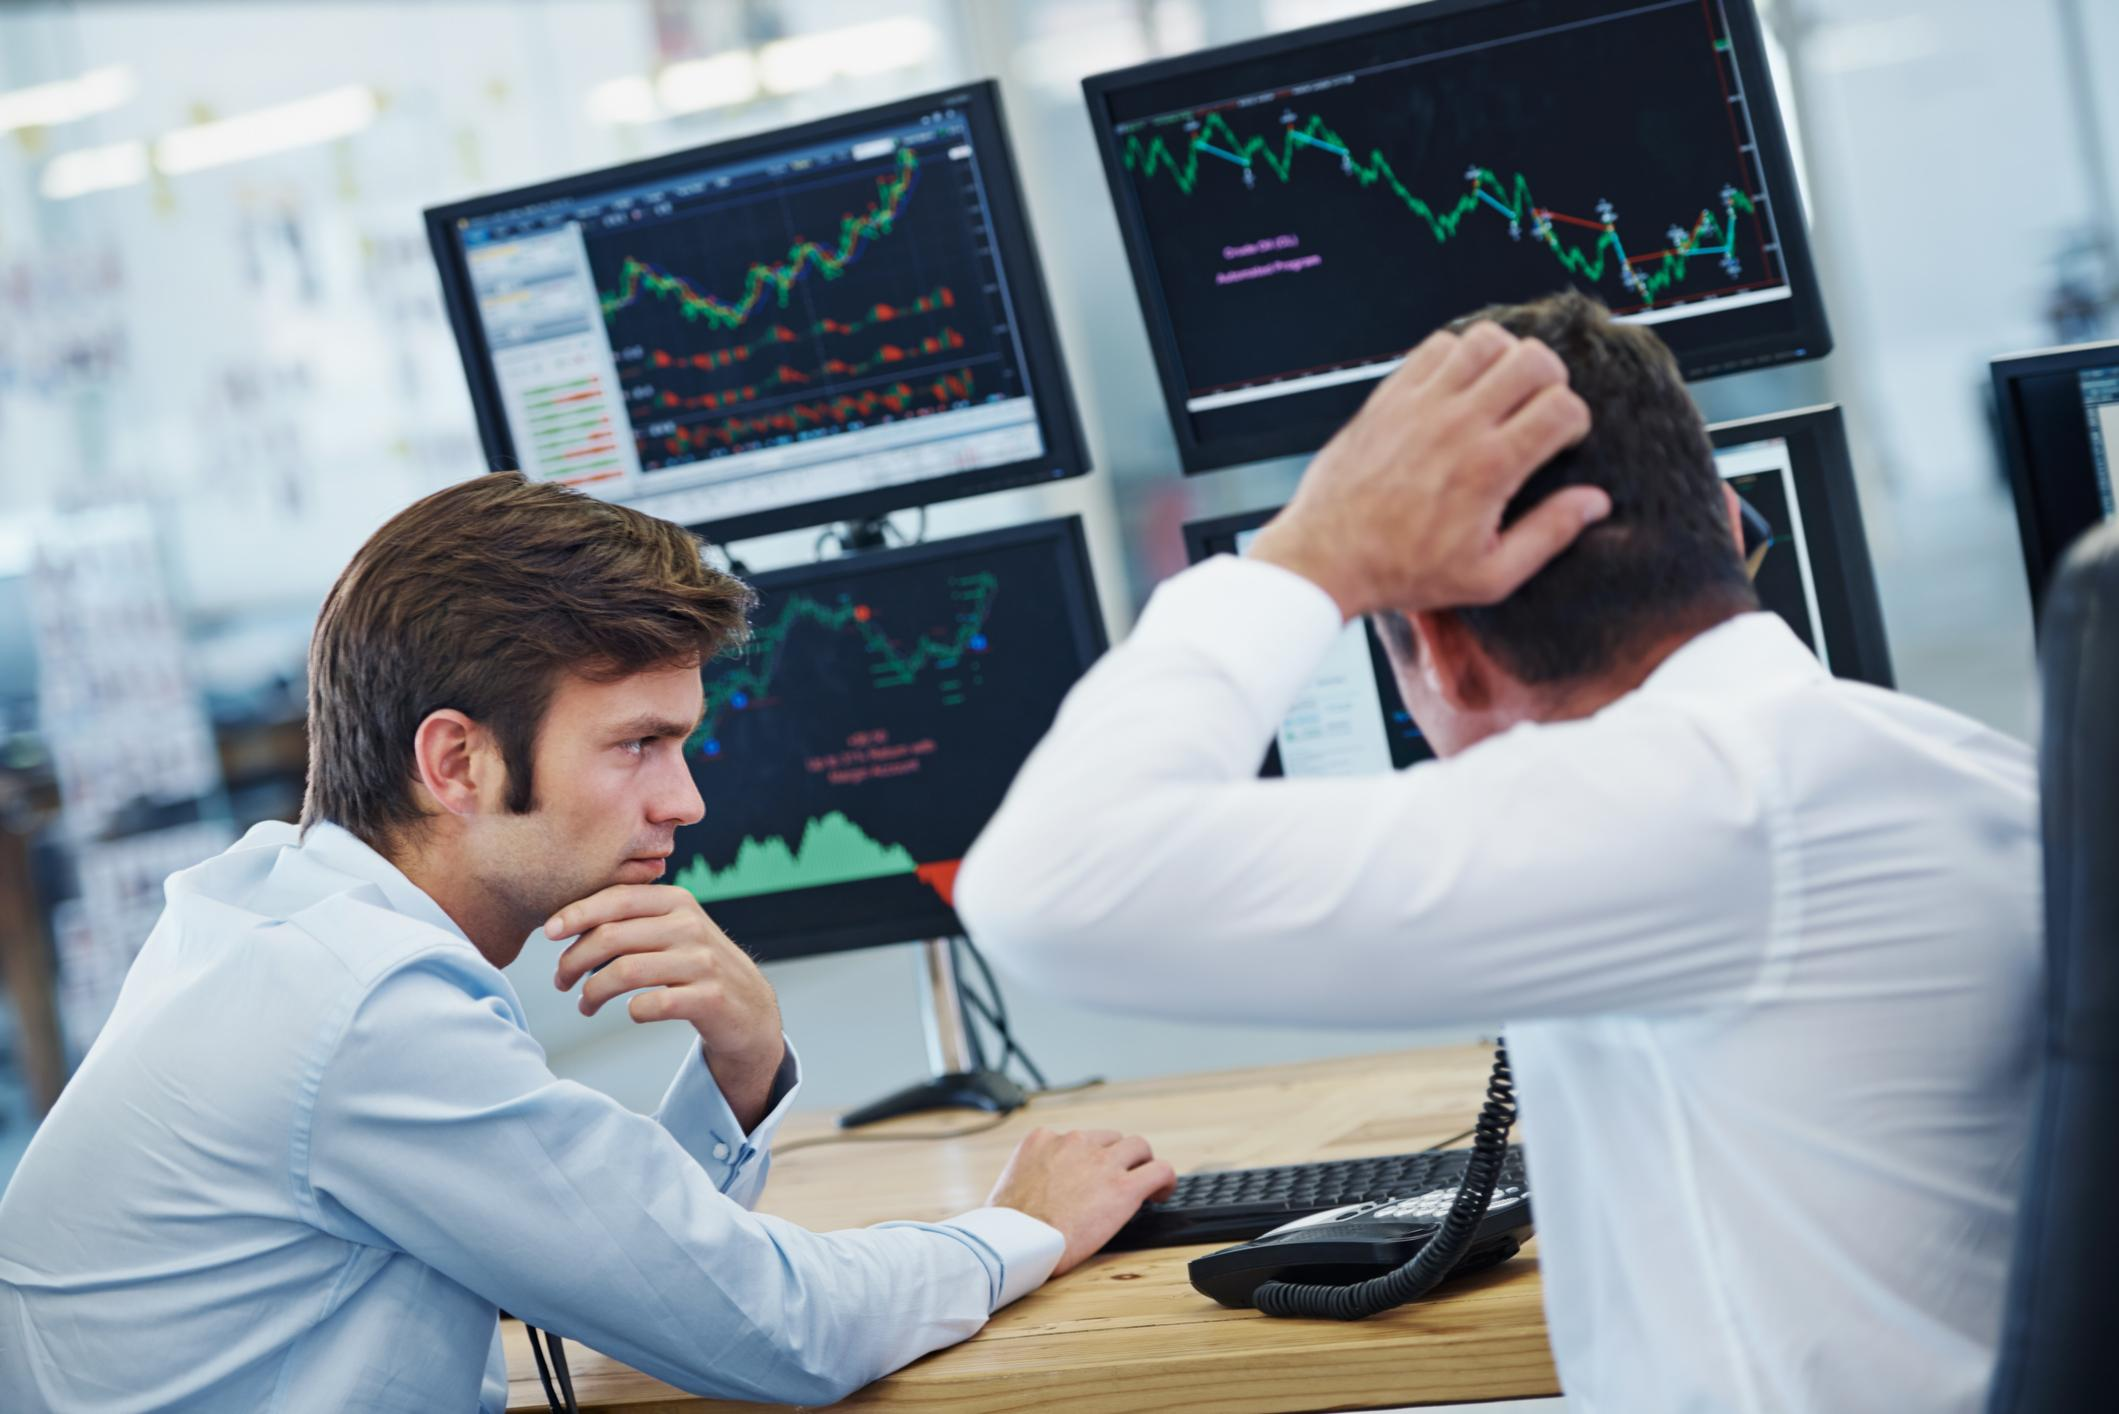 Confused investors looking at computer screens